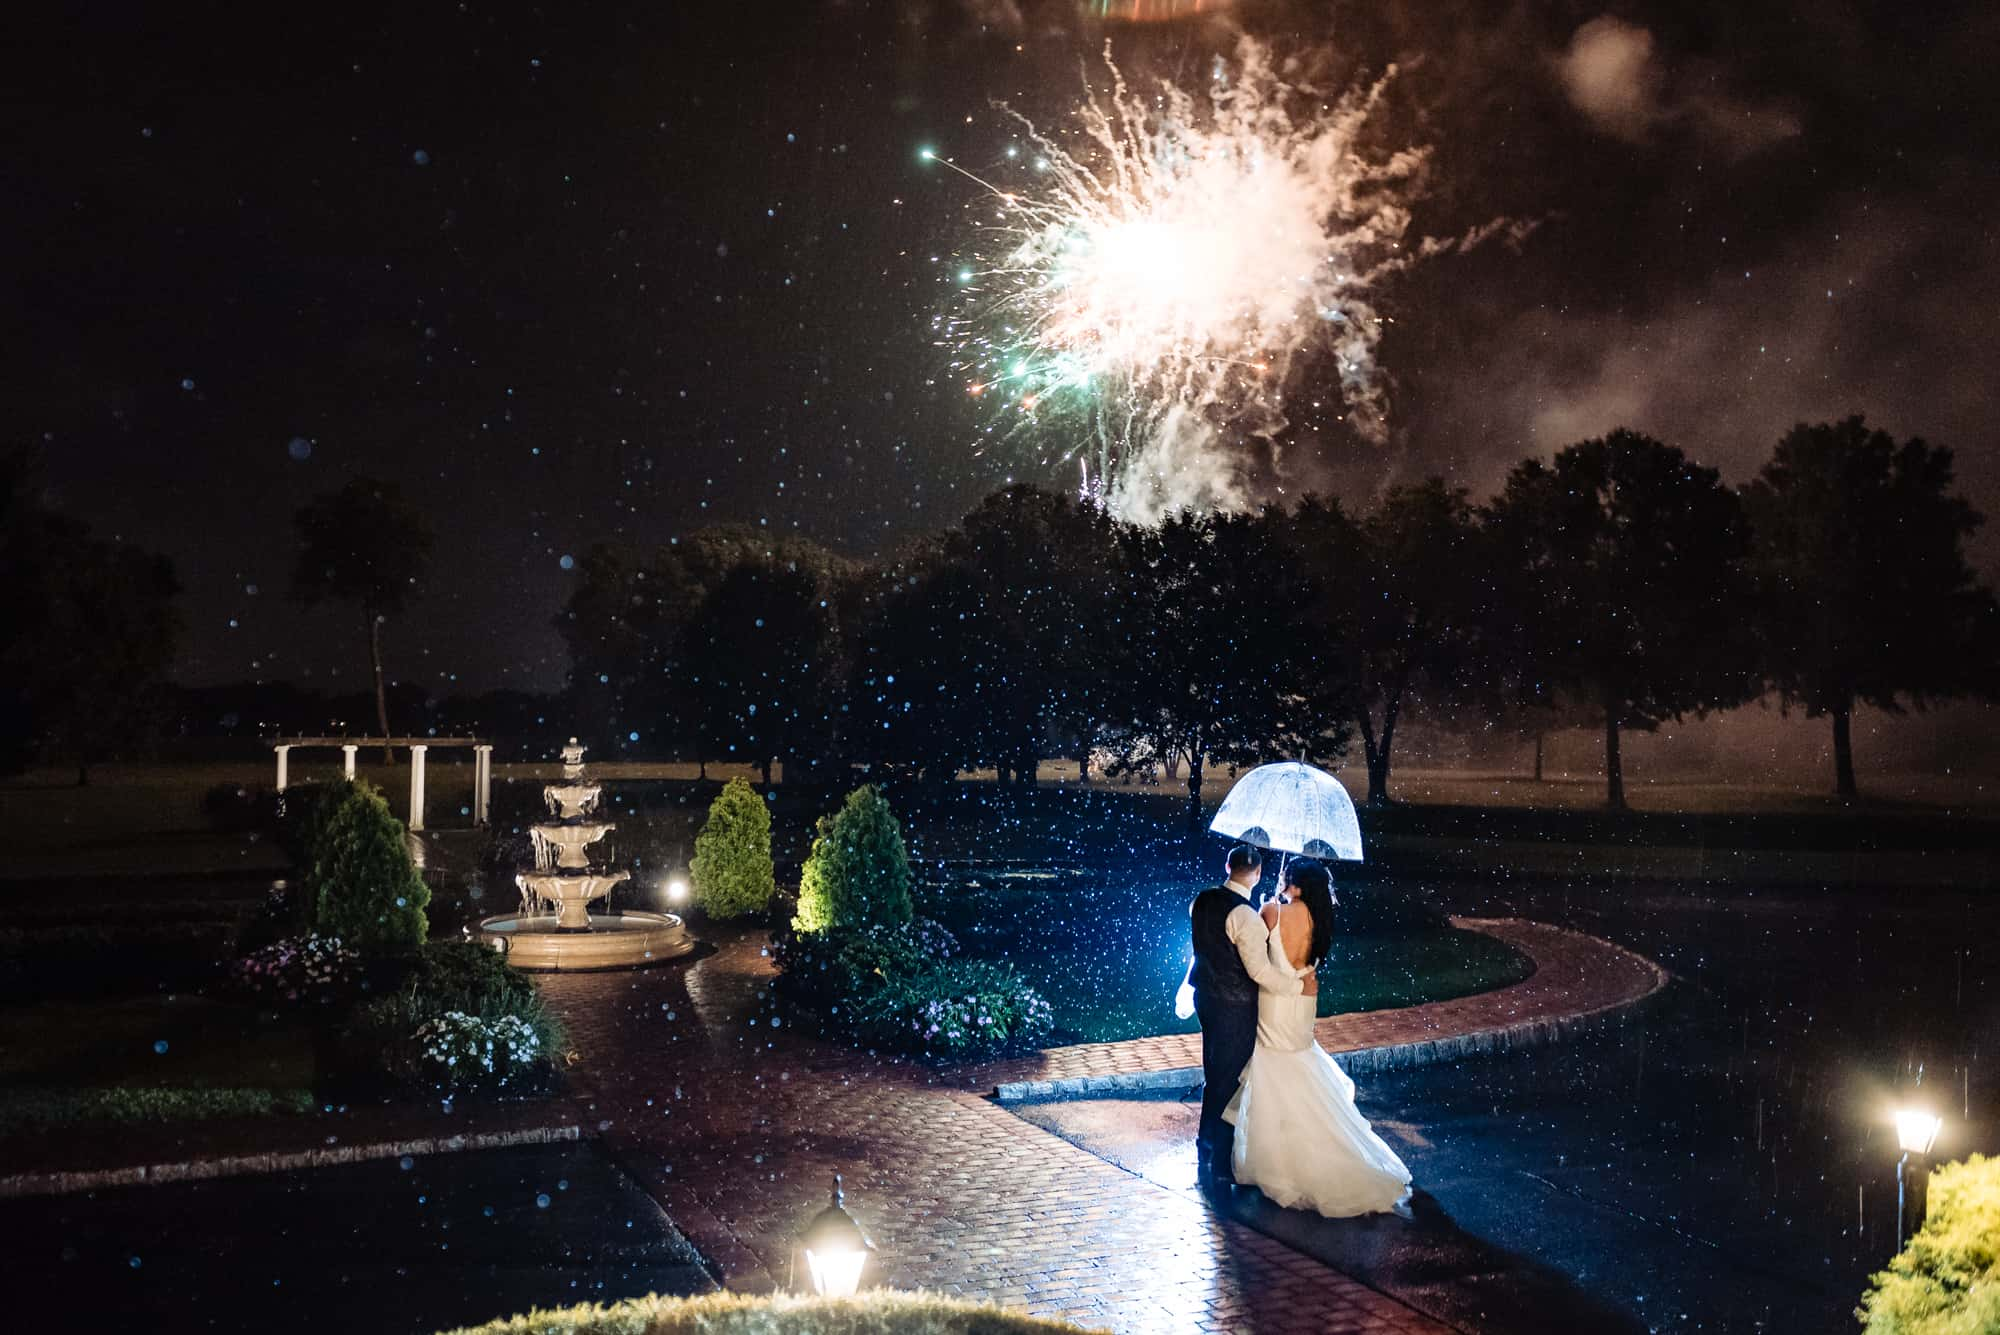 wedding day, bride and groom embracing each other under an umbrella watching fireworks